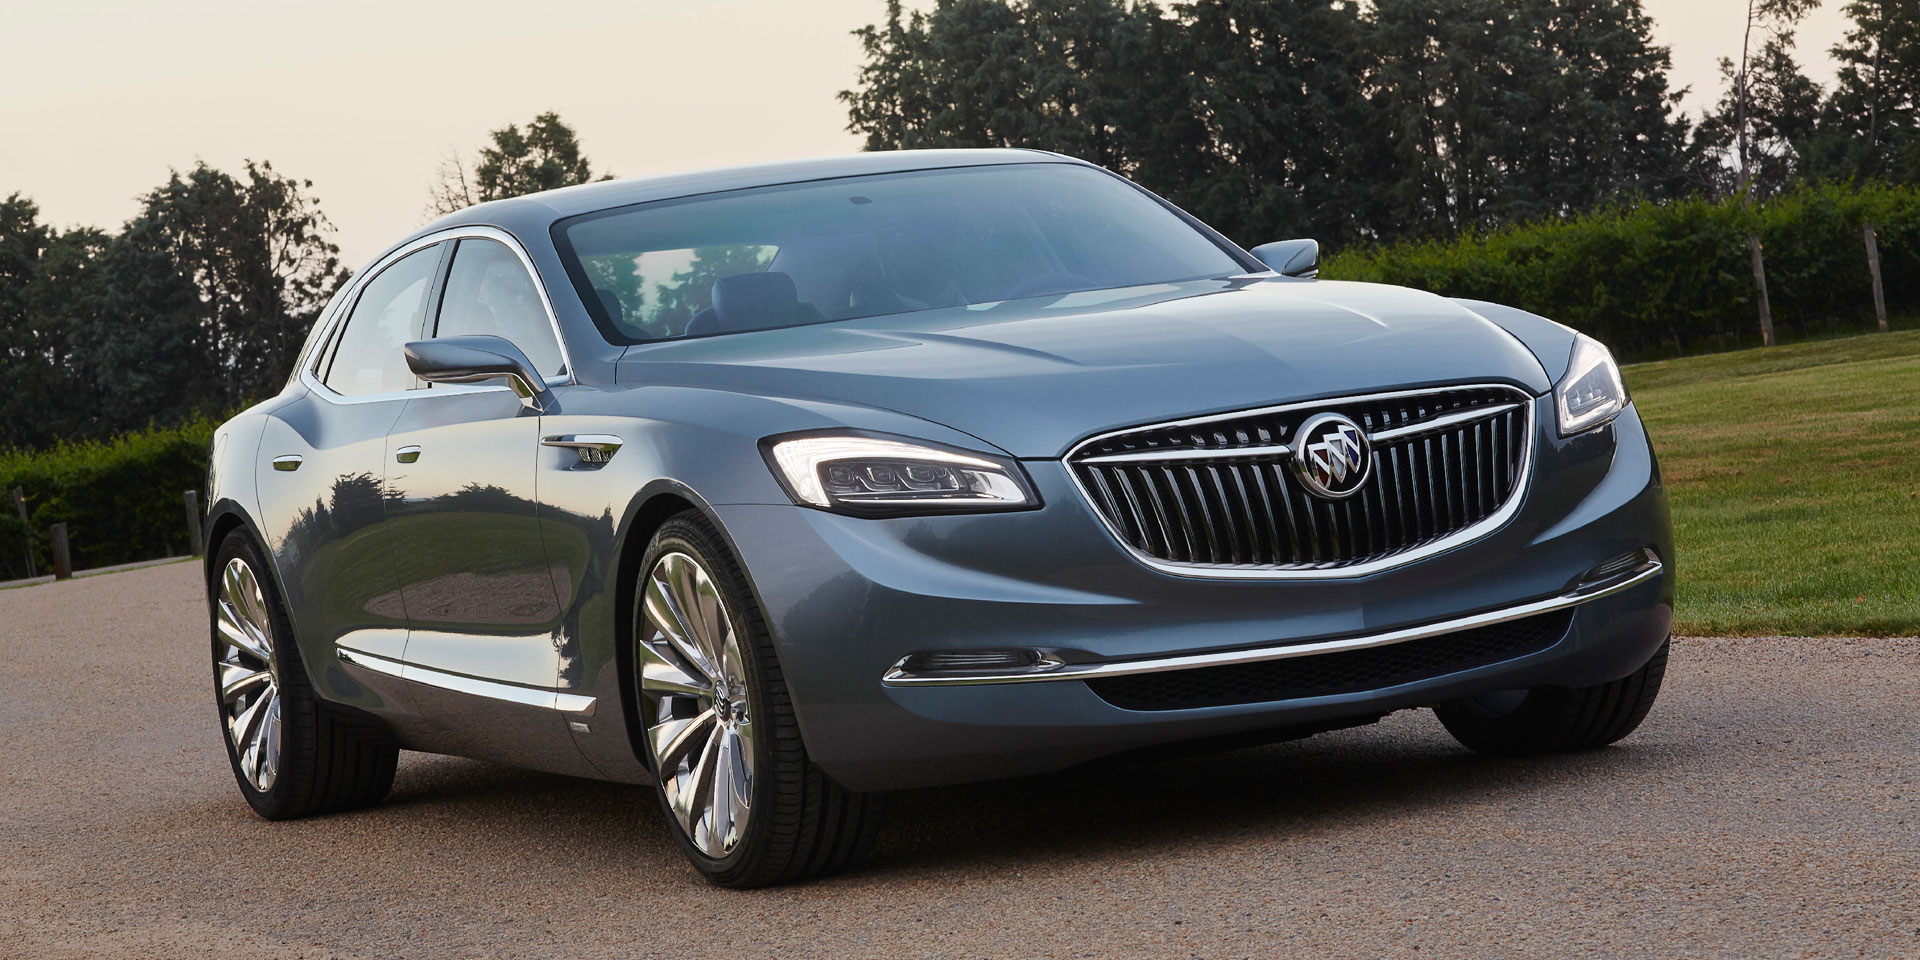 2015 buick avenir vehicles on display chicago auto show. Black Bedroom Furniture Sets. Home Design Ideas